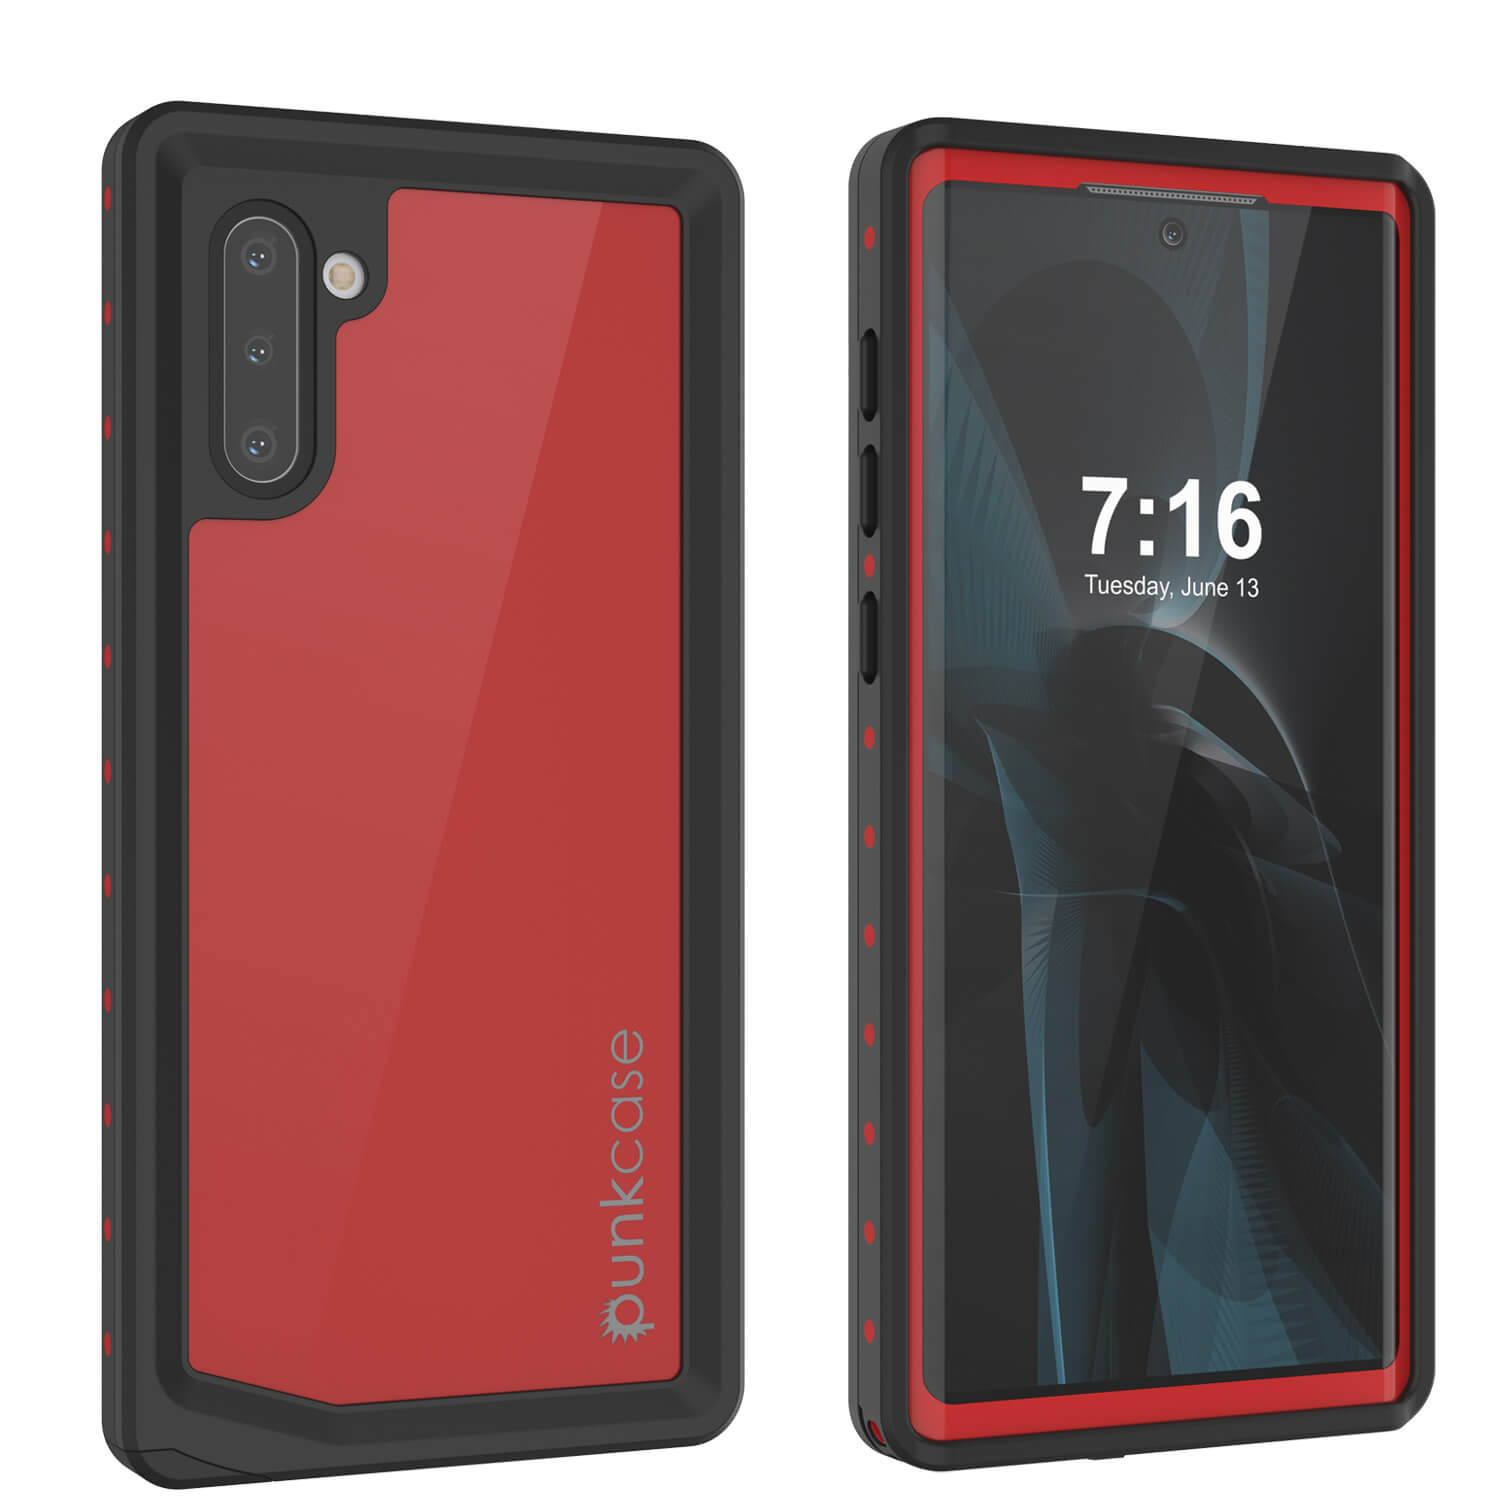 Galaxy Note 10 Waterproof Case, Punkcase Studstar Red Series Thin Armor Cover